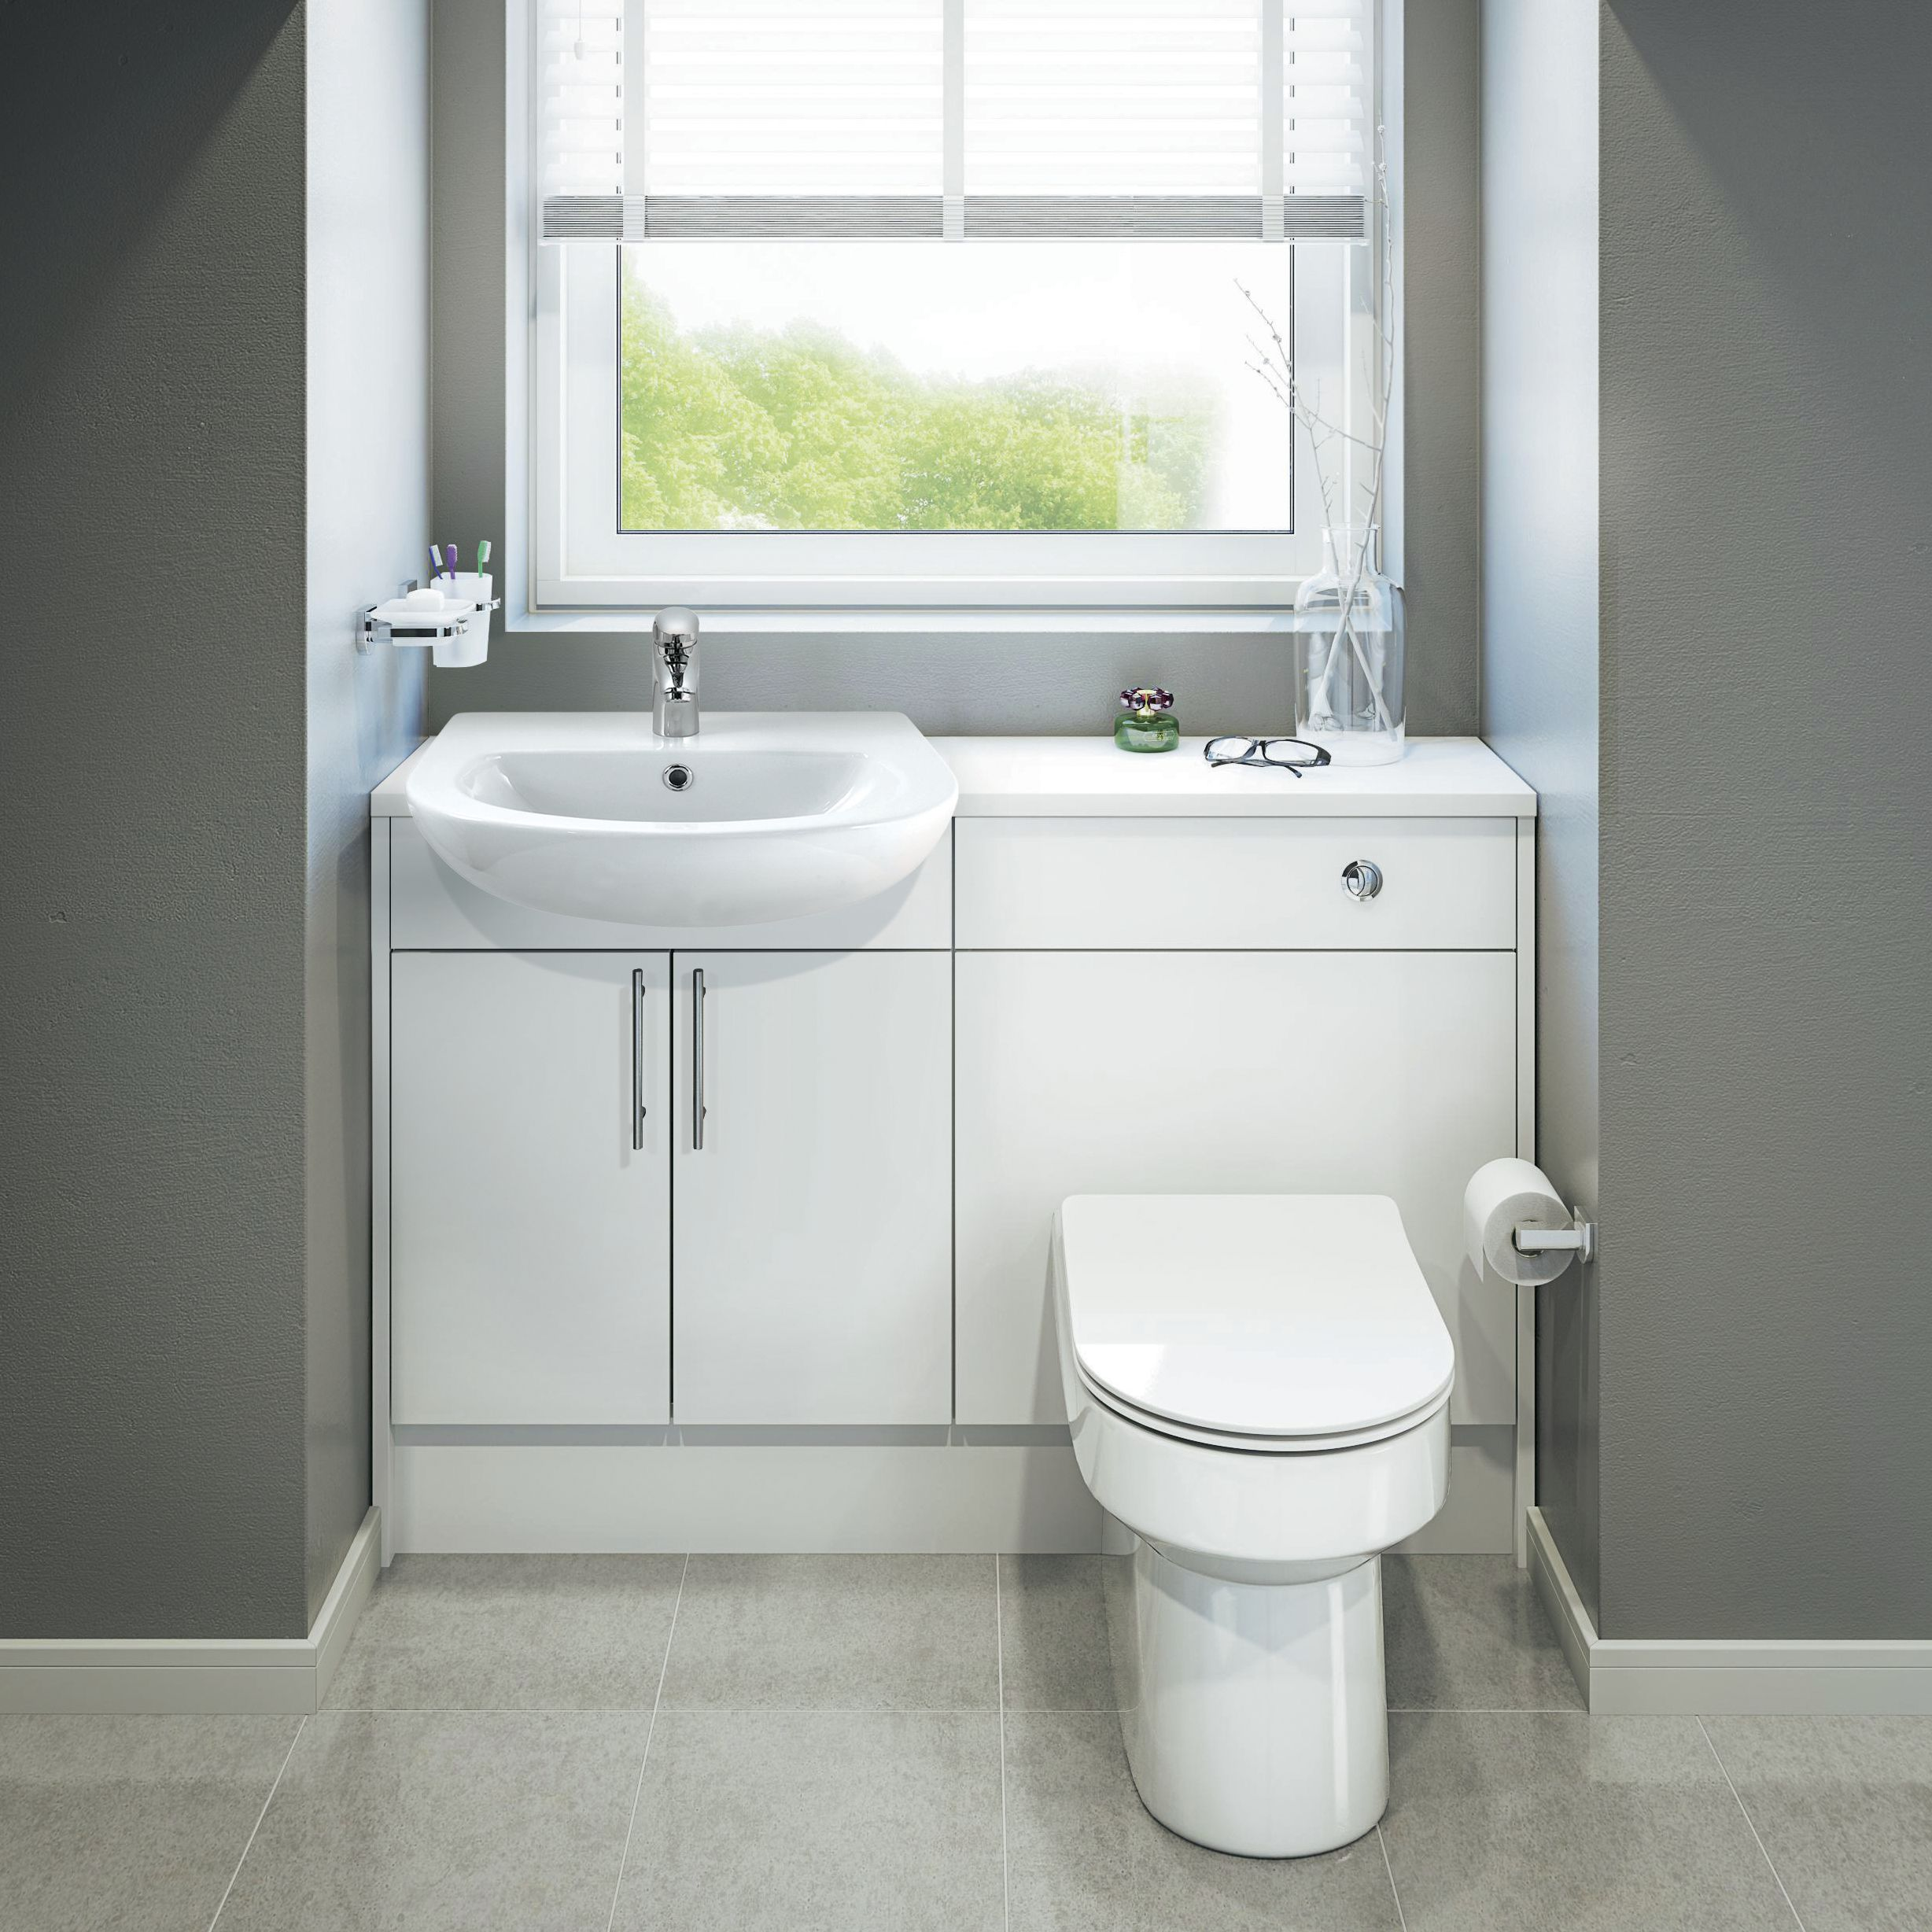 Bathroom fitted units